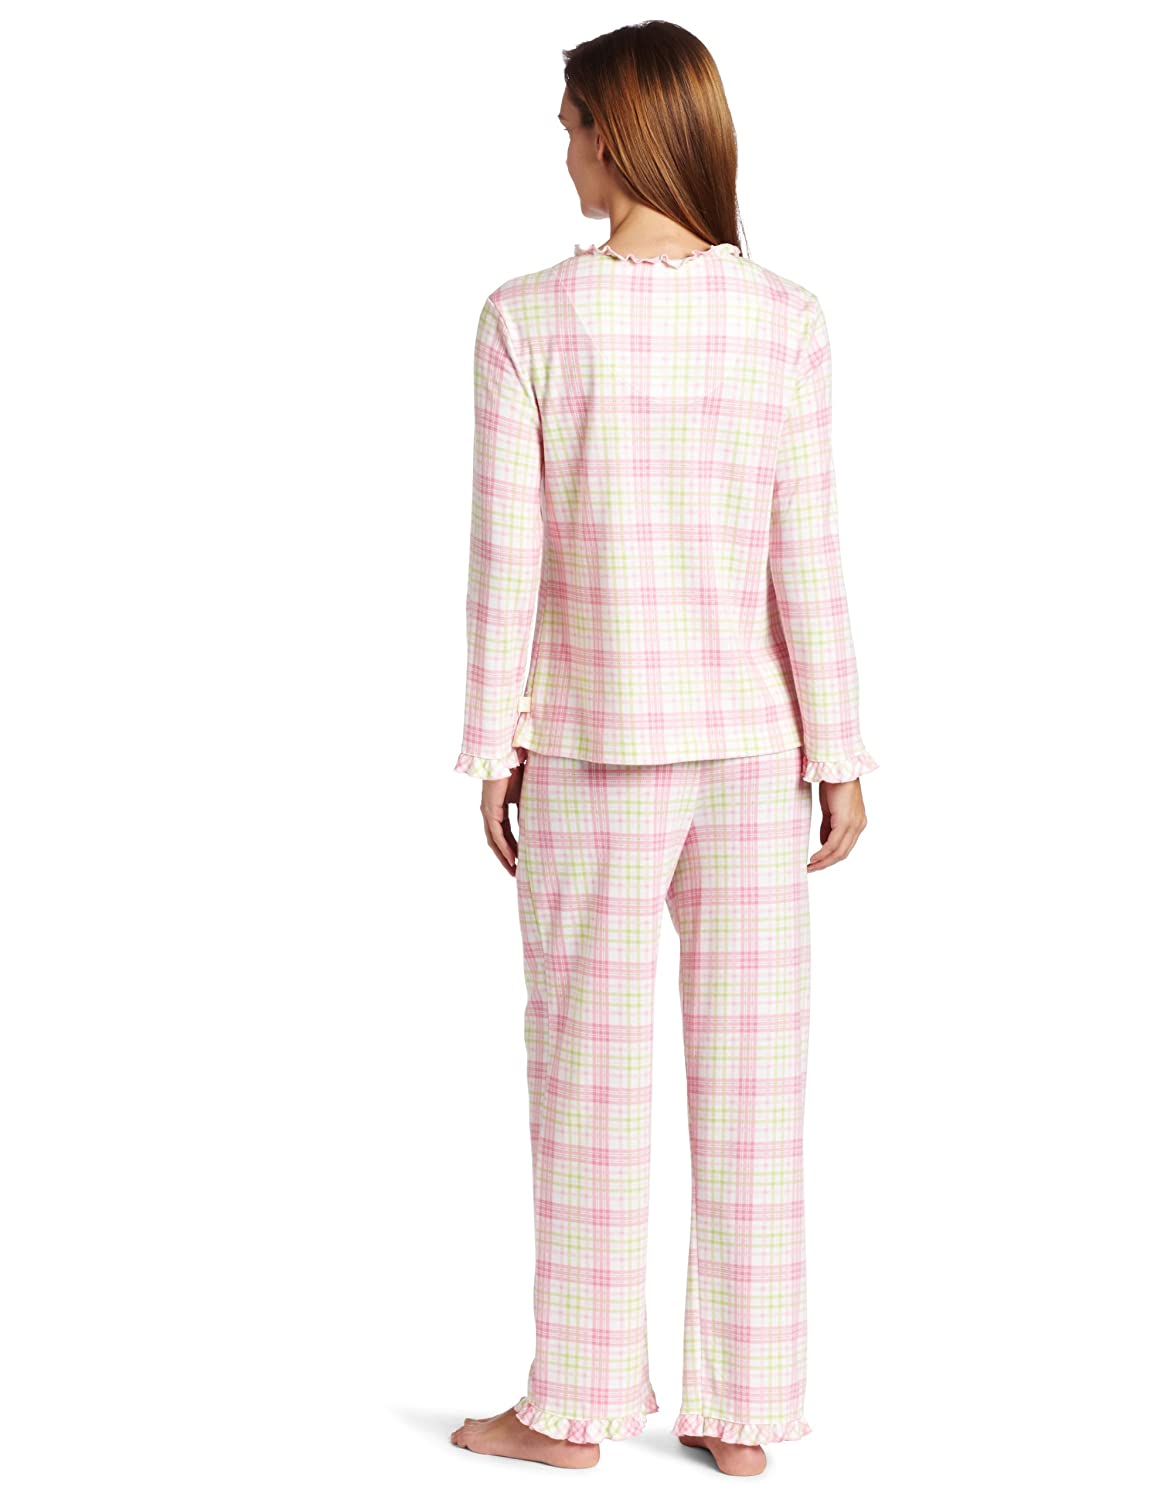 White Orchid Women's Long Sleeve Cardigan Pajama Set